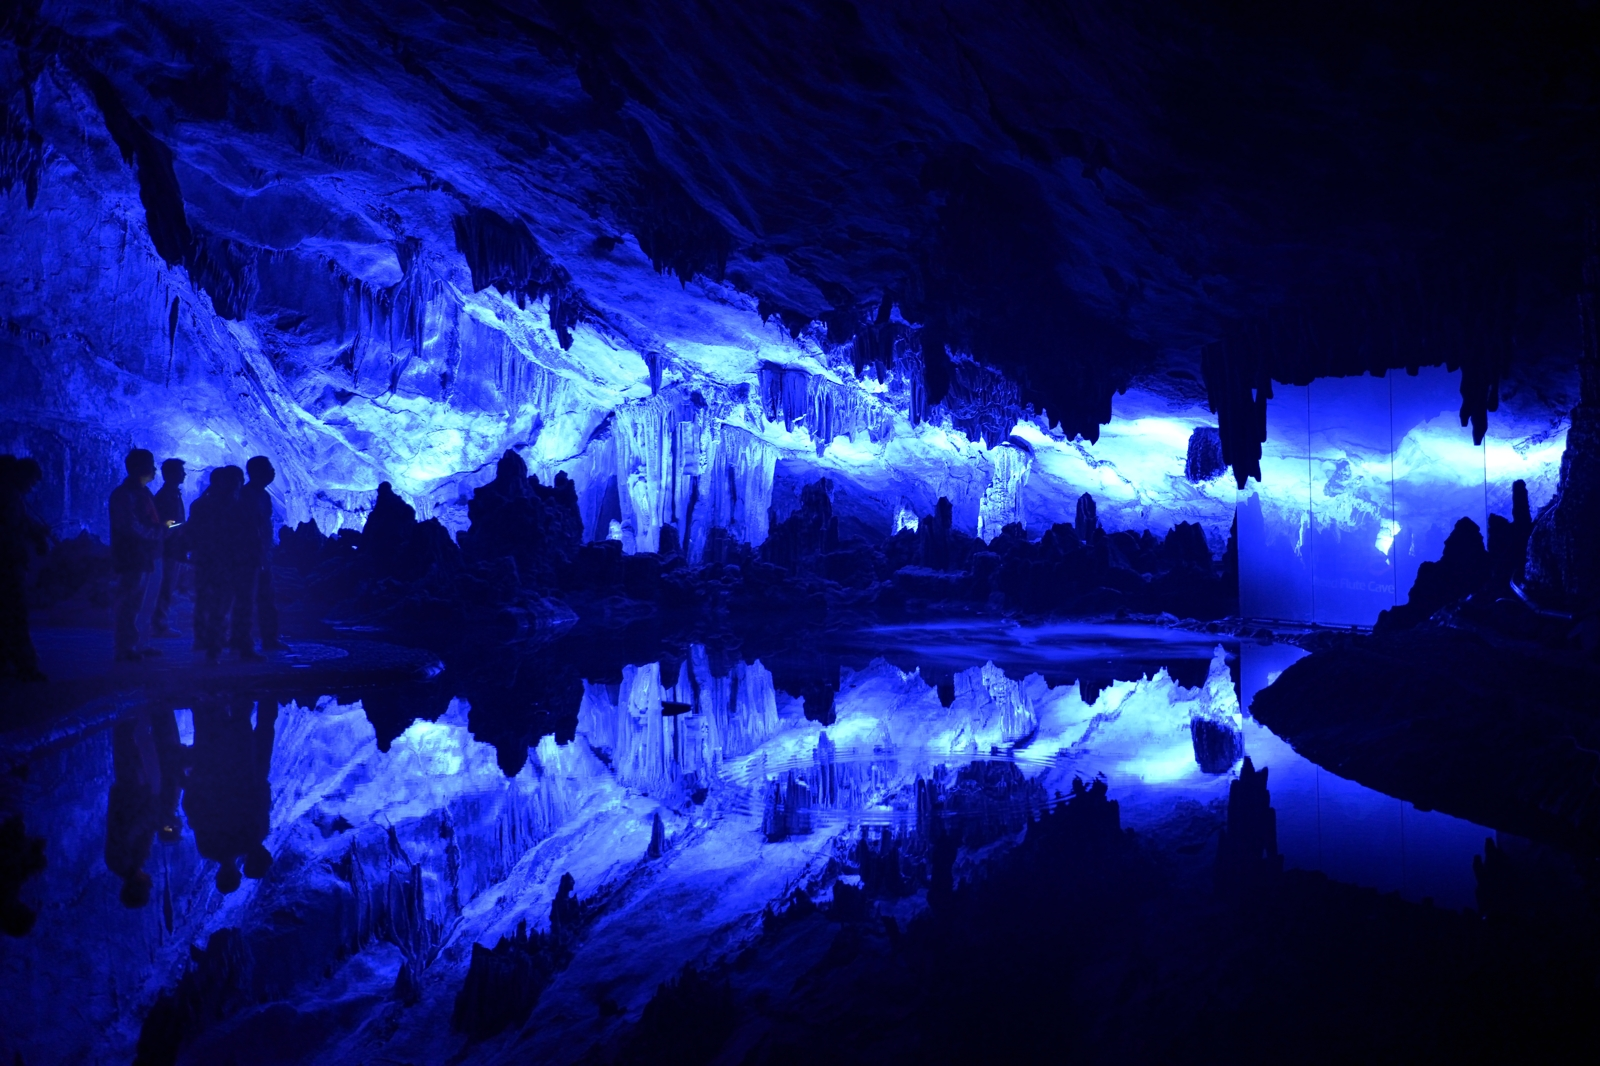 The Reed Flute Cave - China...